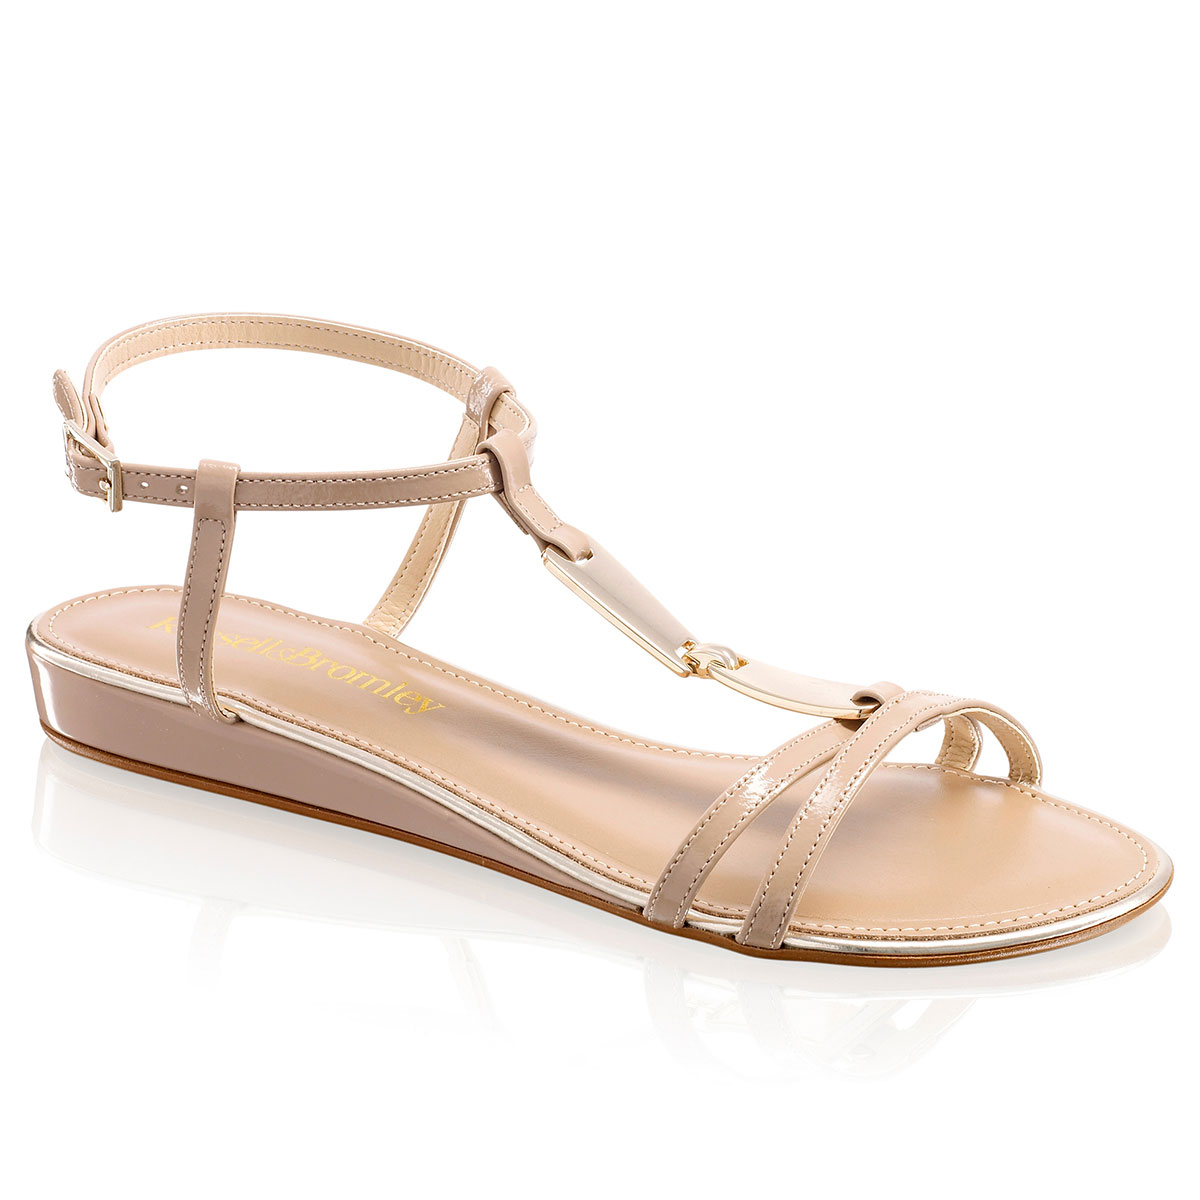 Russell and Bromley TRINKET Trim Strappy Sandal